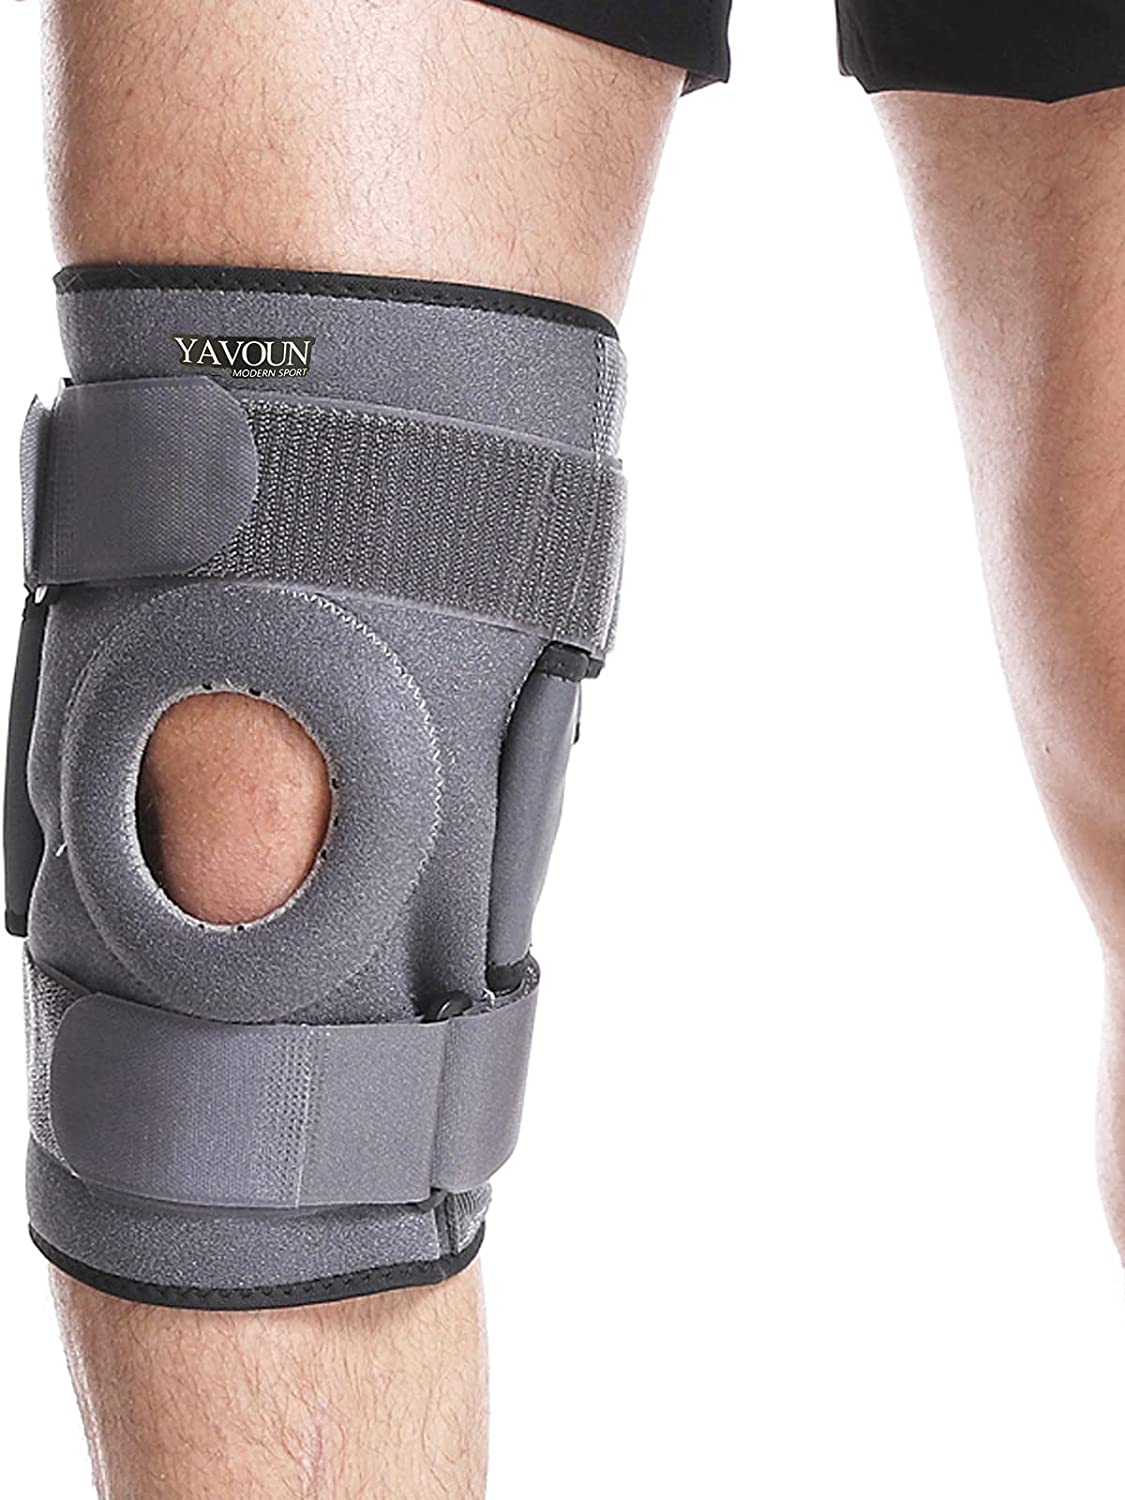 Knee Brace Support for Arthritis Strap Patella Pain San Jose Limited Special Price Mall R